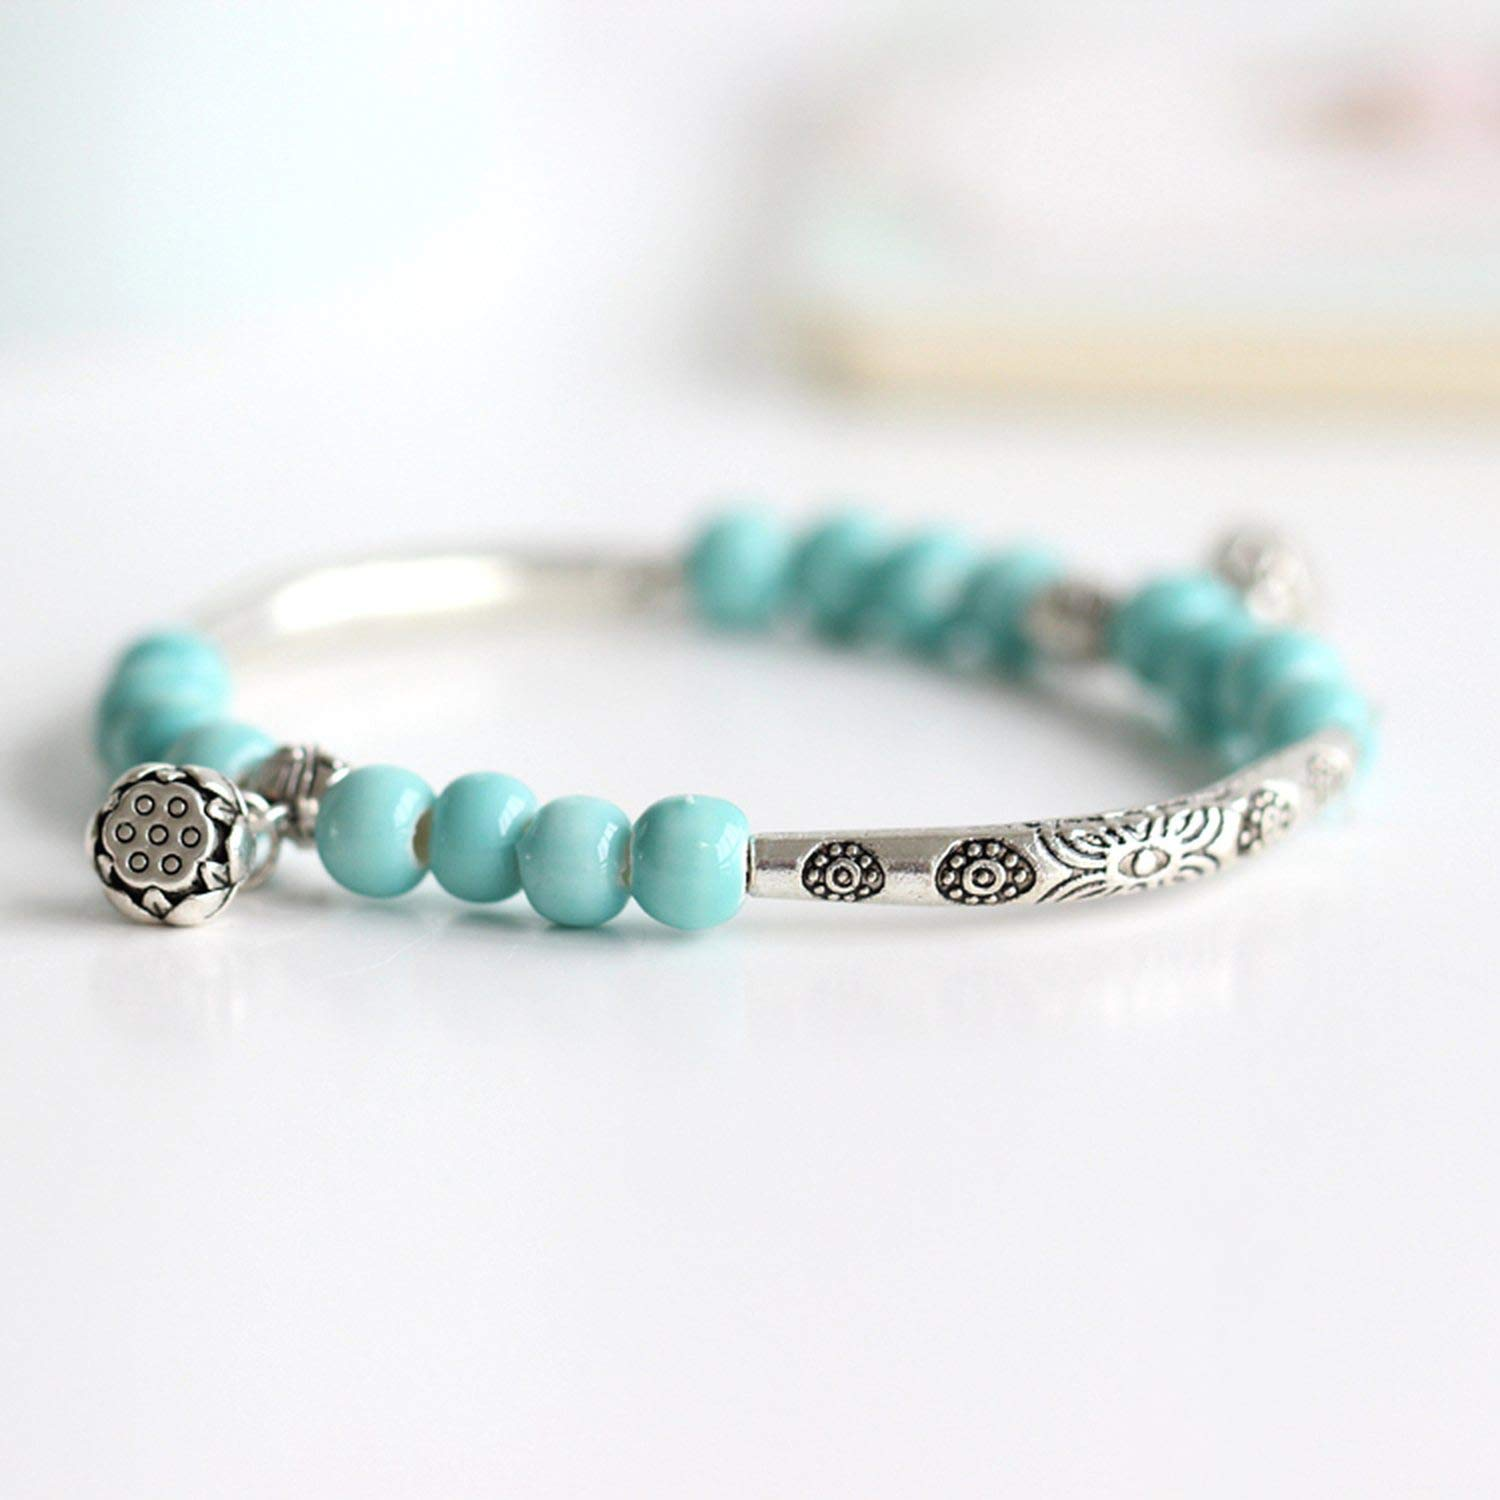 Womens Ceramic Hand Made DIY Bracelets Retro Bracelet for Women Girl Gift Jewelry,19,18Cm